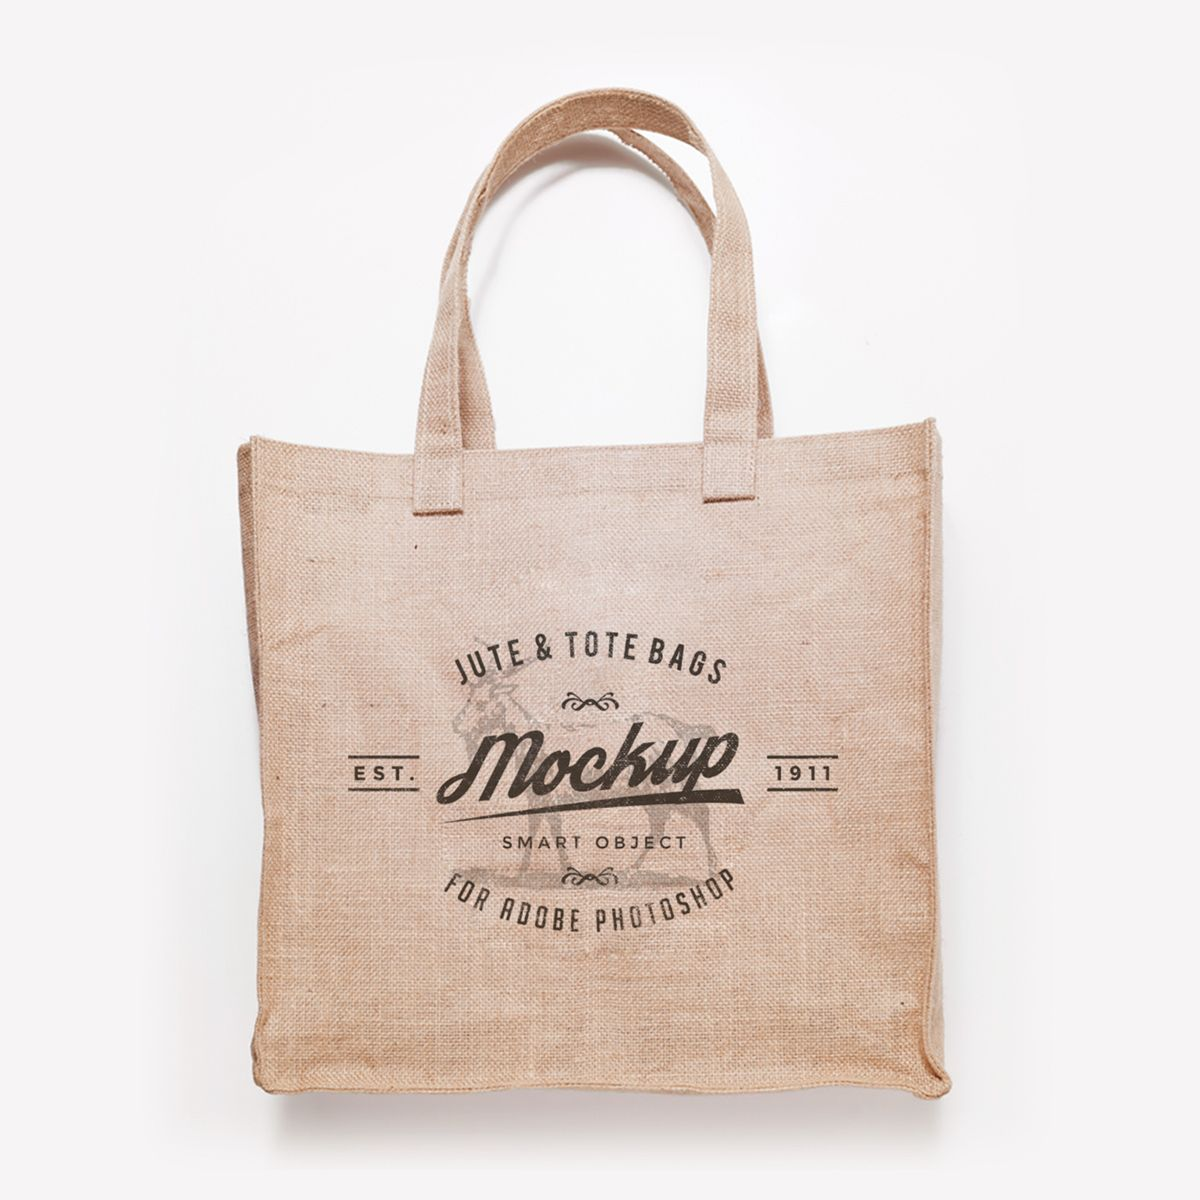 Tote bag template illustrator - We Have Scoured The Web And Found This Treasure Of Best Bag Mockup Psd For Designers Templates Mockups To Present Shopping Bag Eco Bag Jute And Tote Bag